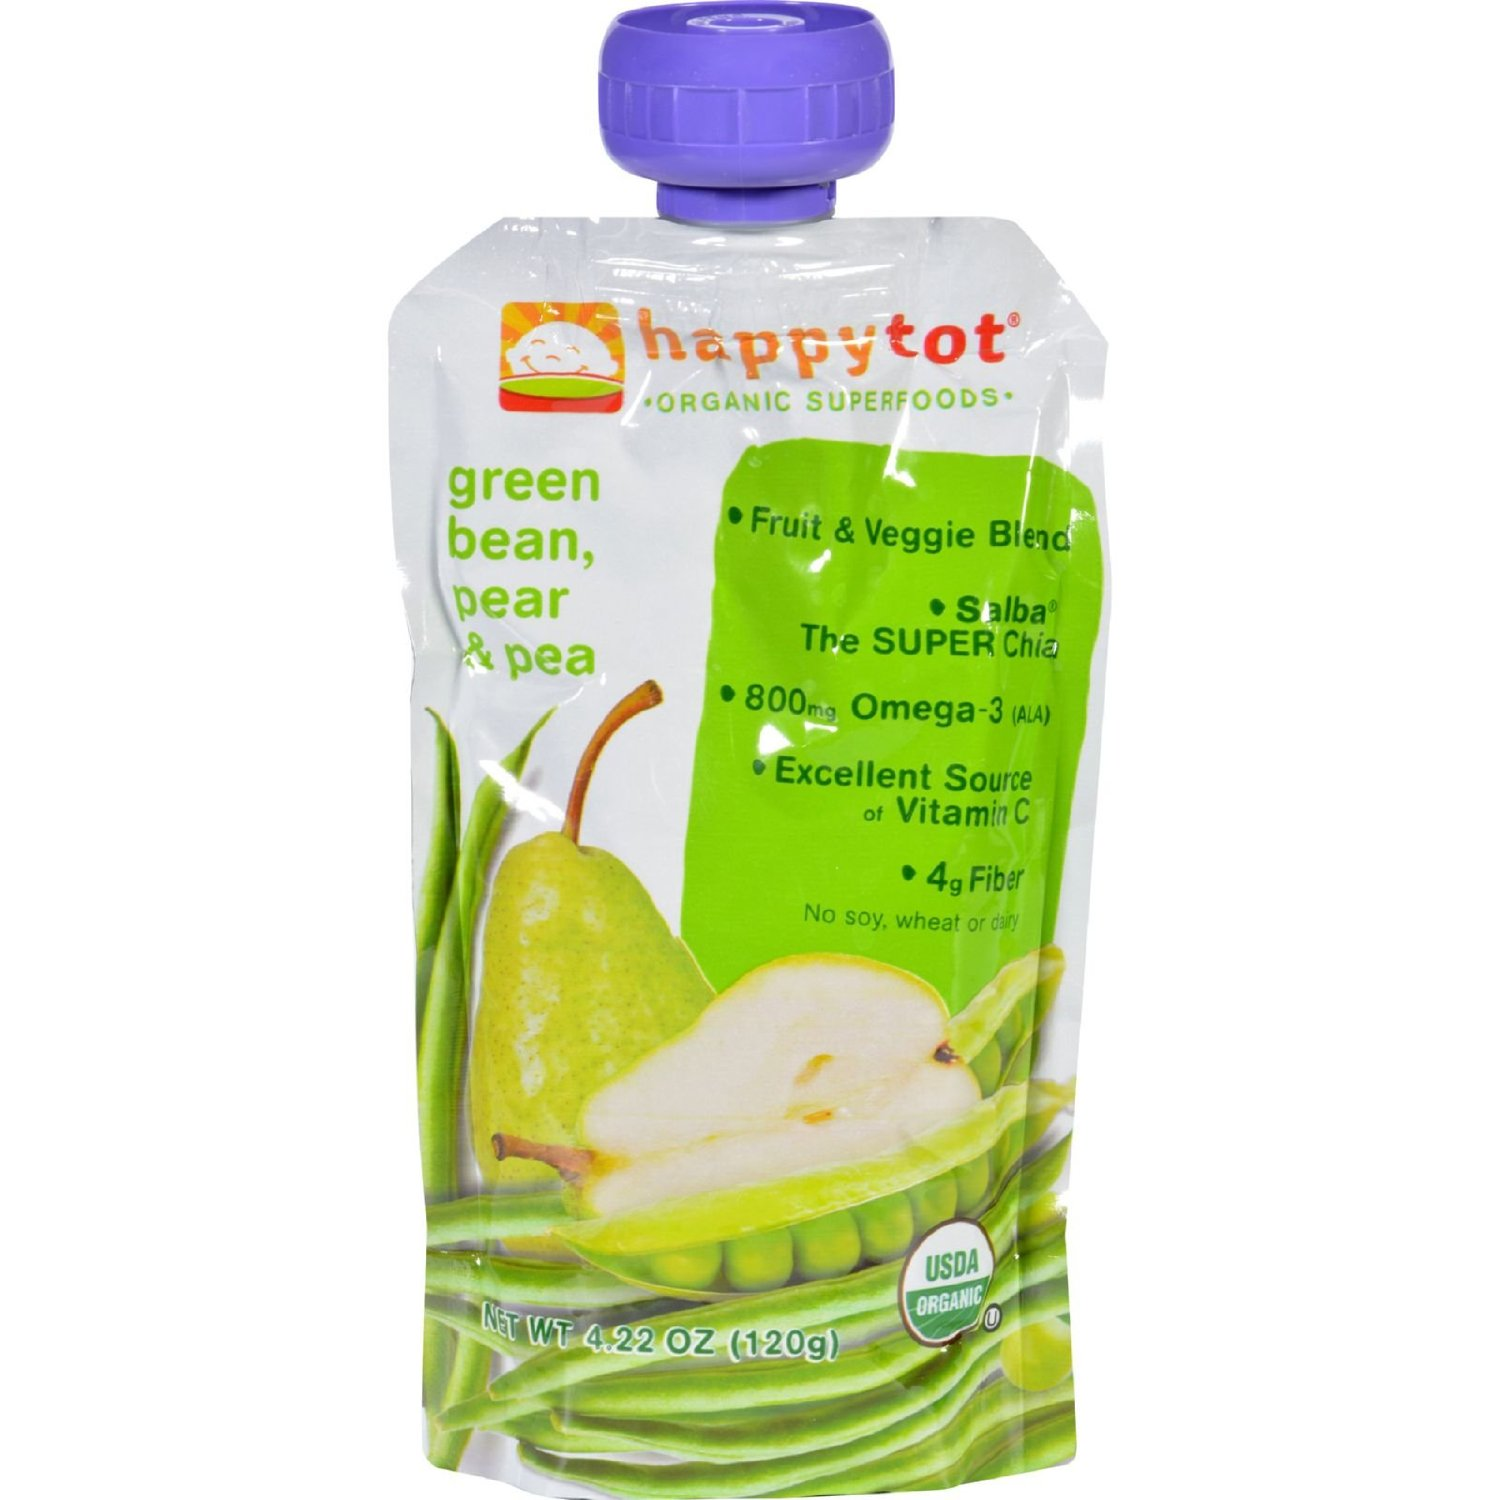 Happy Tot Toddler Food – Organic – Green Bean Pear and Pea – 4/4.22oz – case of 4